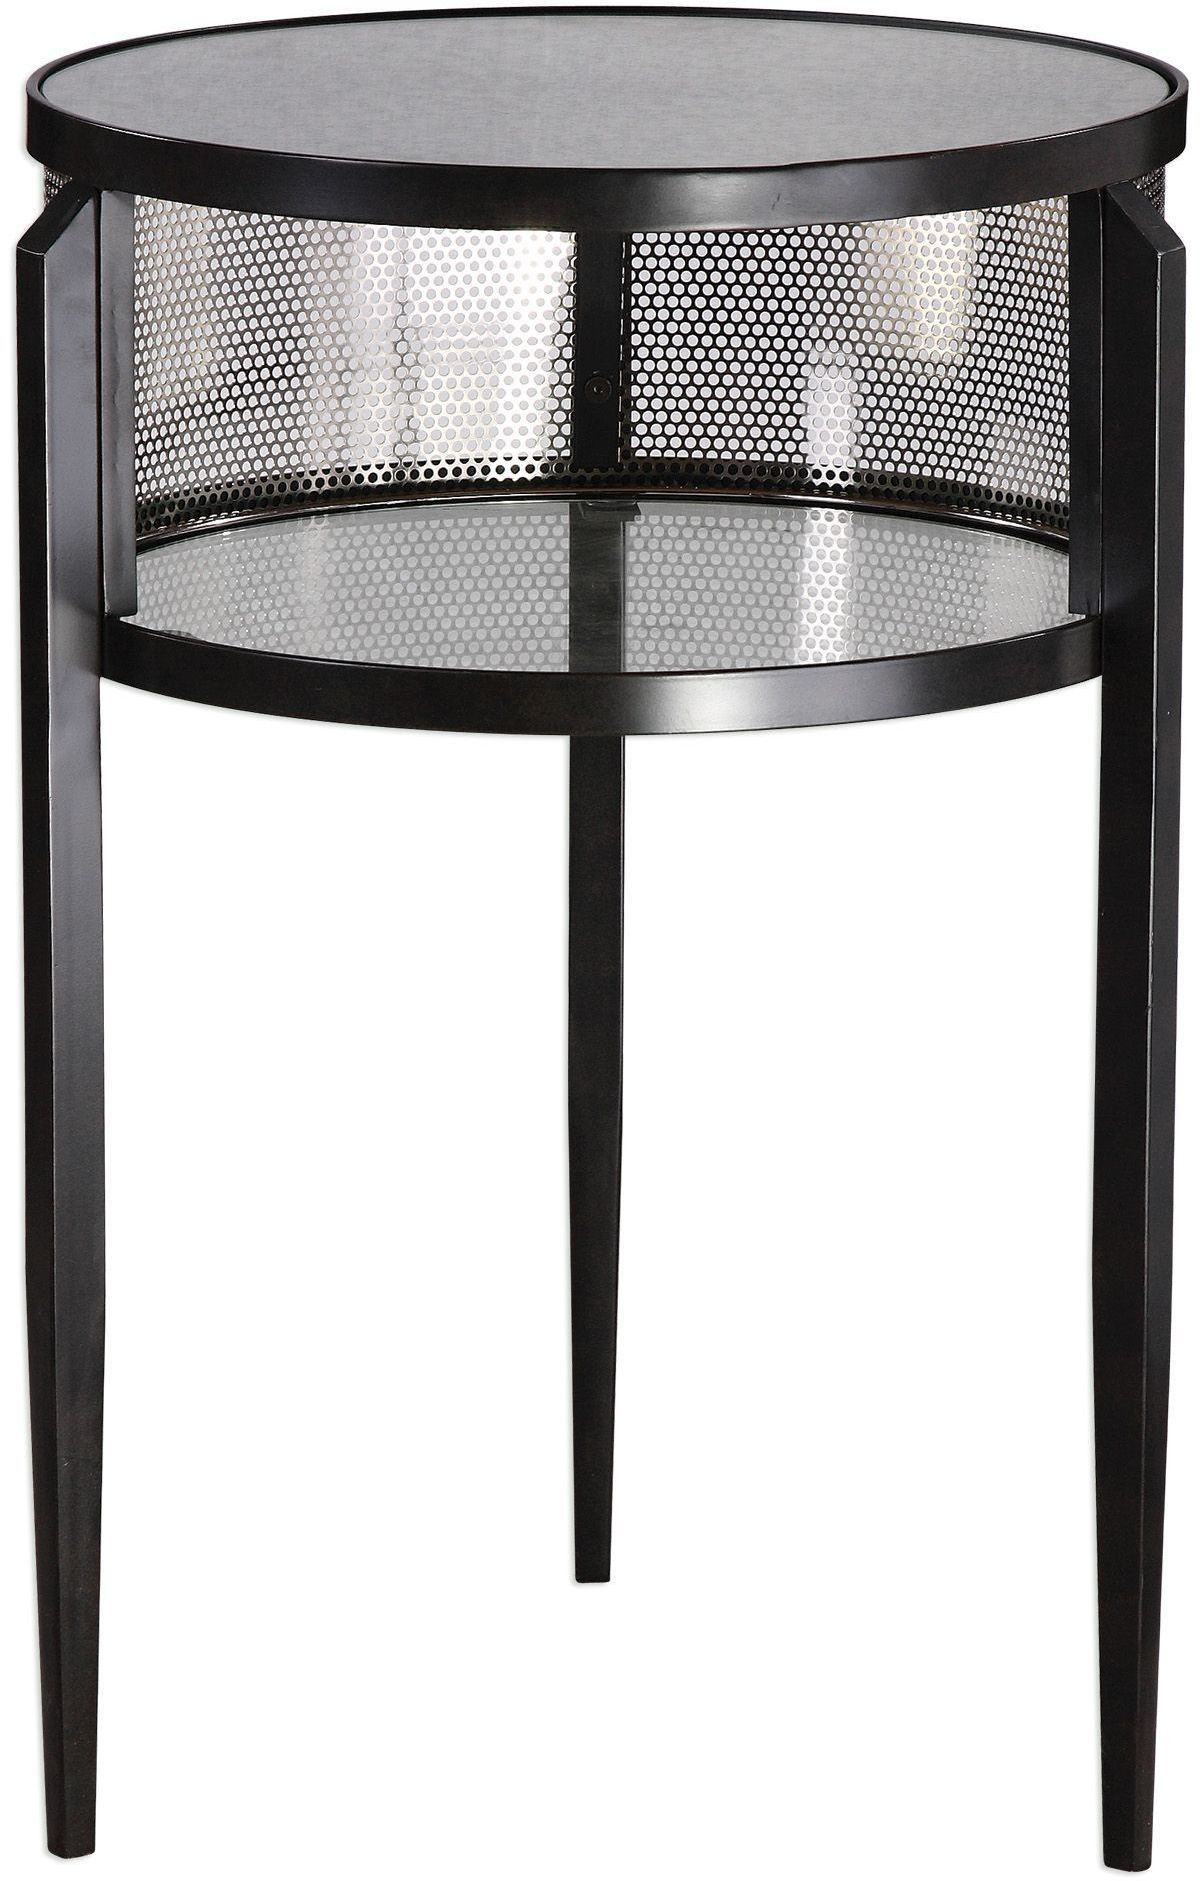 argos cabinets the terrific drum style end tables this accent table finished aged black iron with slim tapered legs phone charging furniture small drinks fridge kmart dining